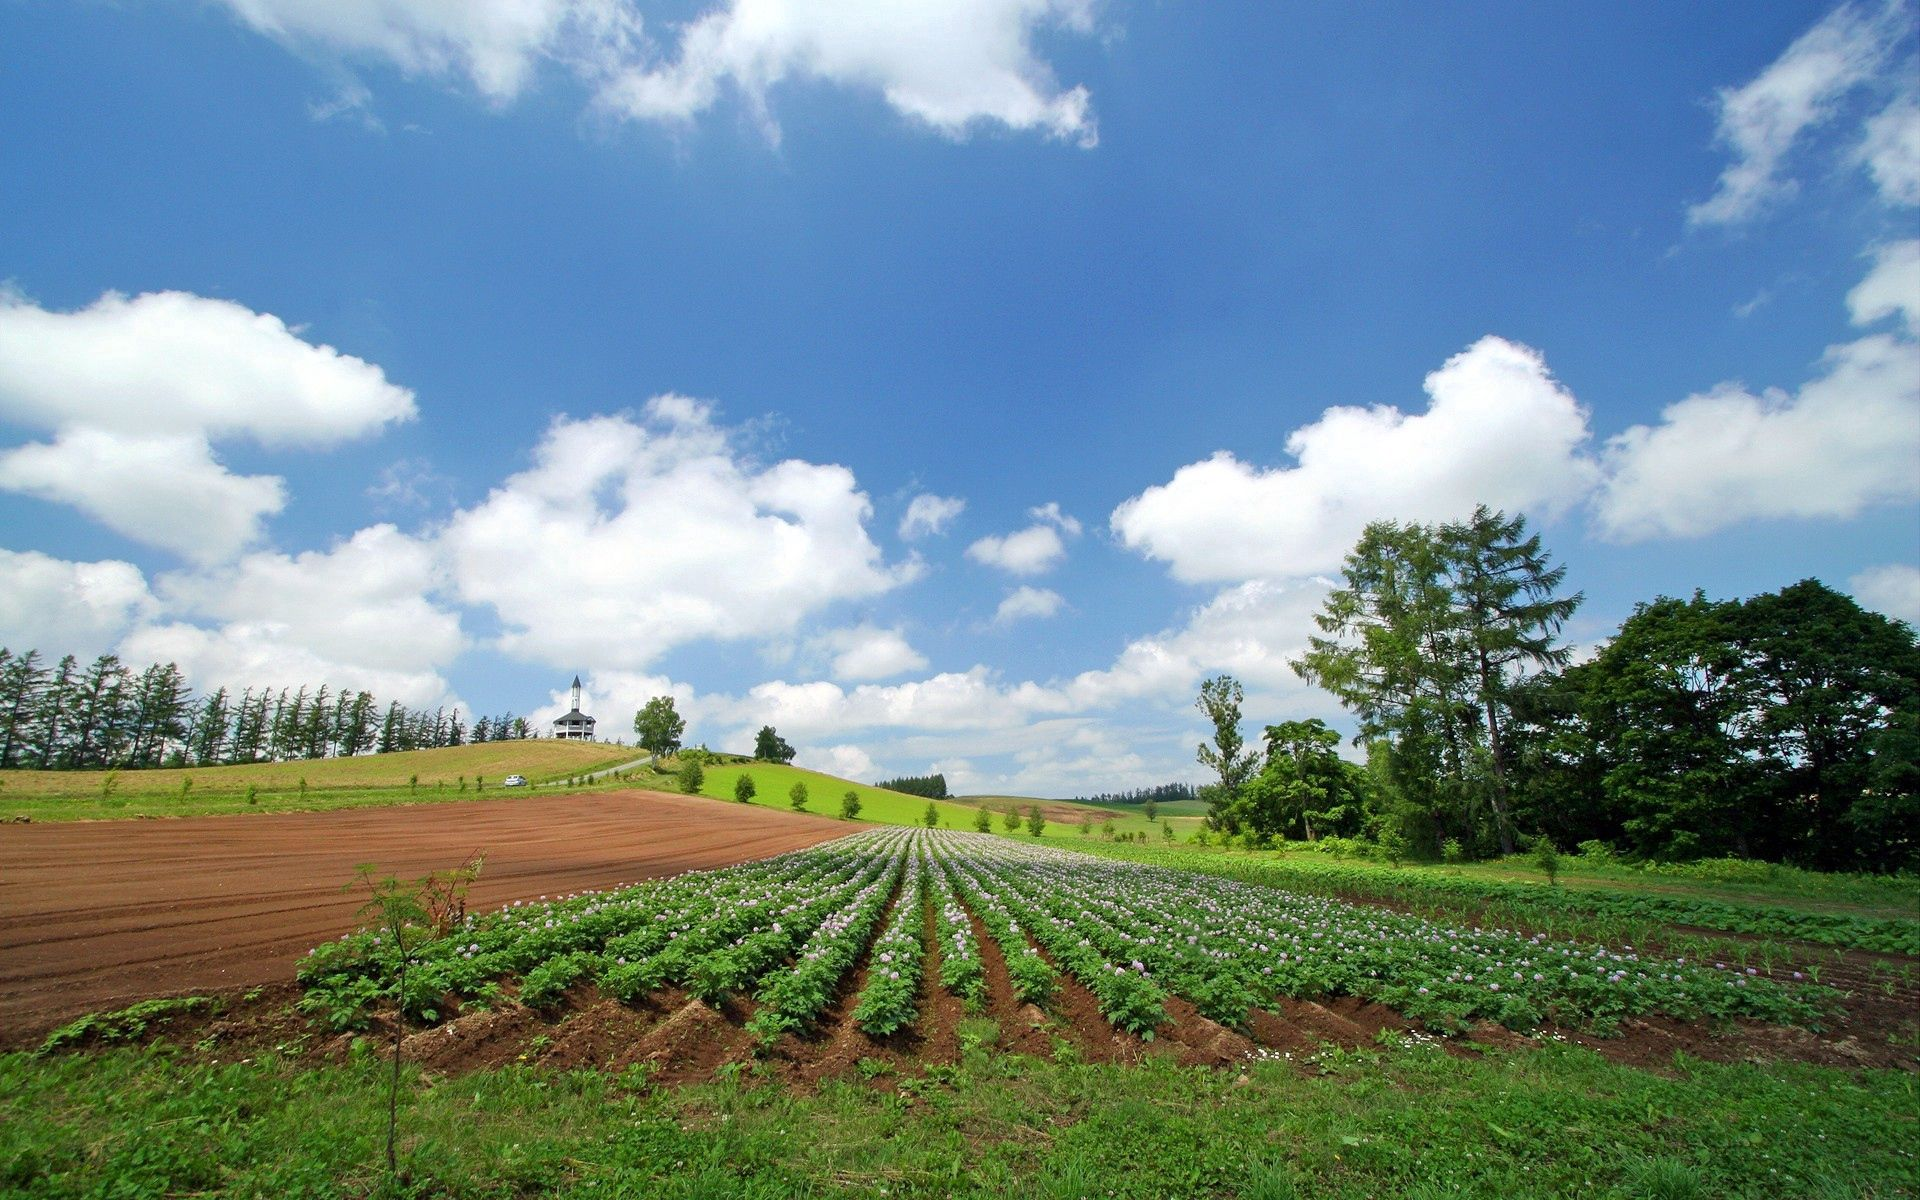 52624 download wallpaper Nature, Summer, Field, Plantation, Rows, Ranks, Culture, Farm, Economy screensavers and pictures for free